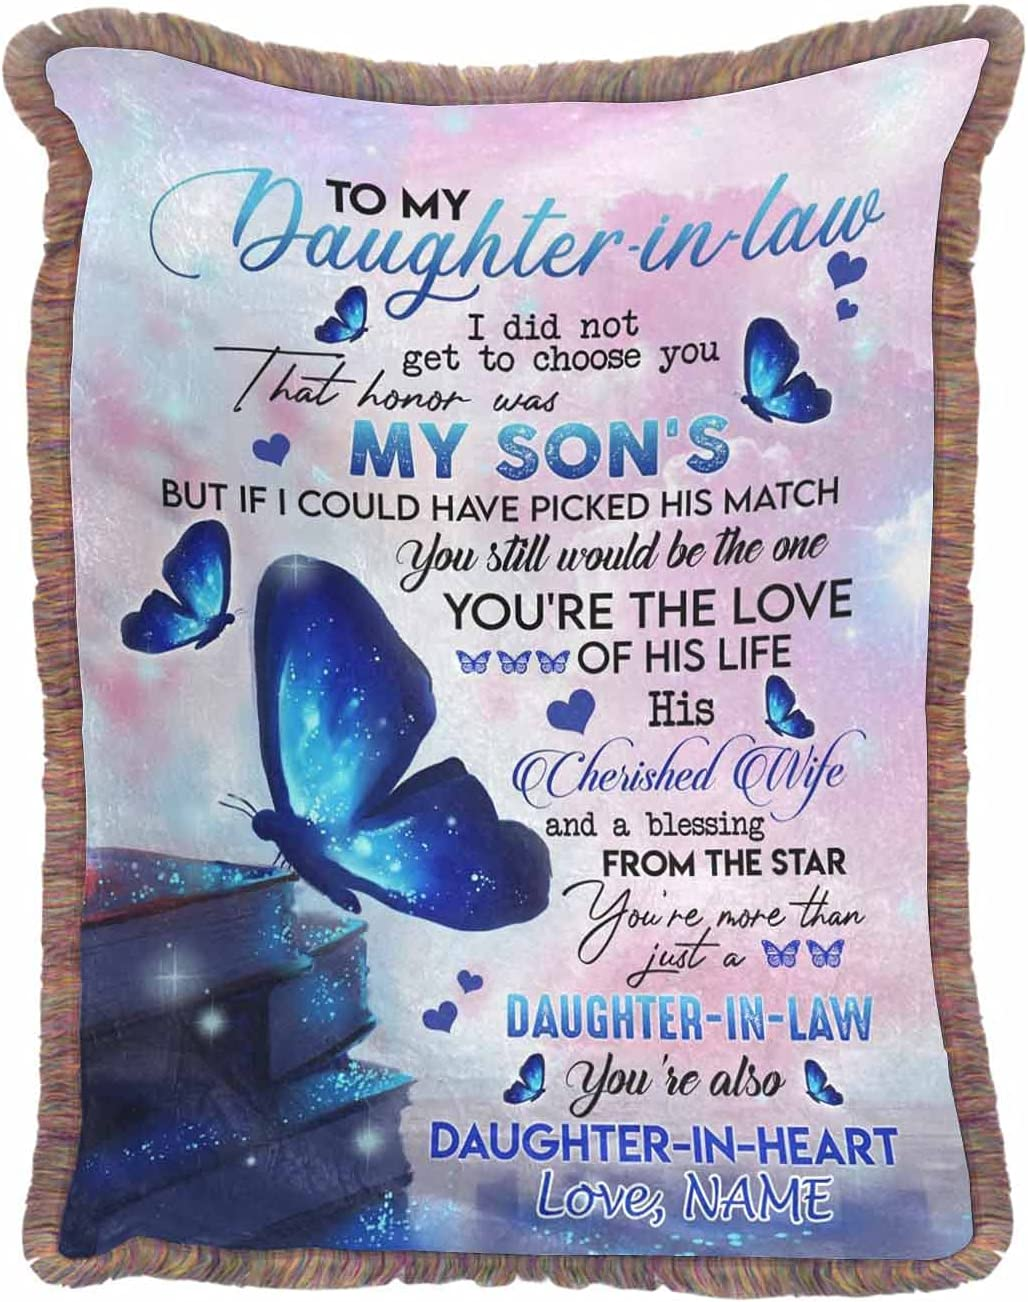 Personalized Blanket with Fringe to Daughter-in-Law Max 59% OFF You're My A Low price